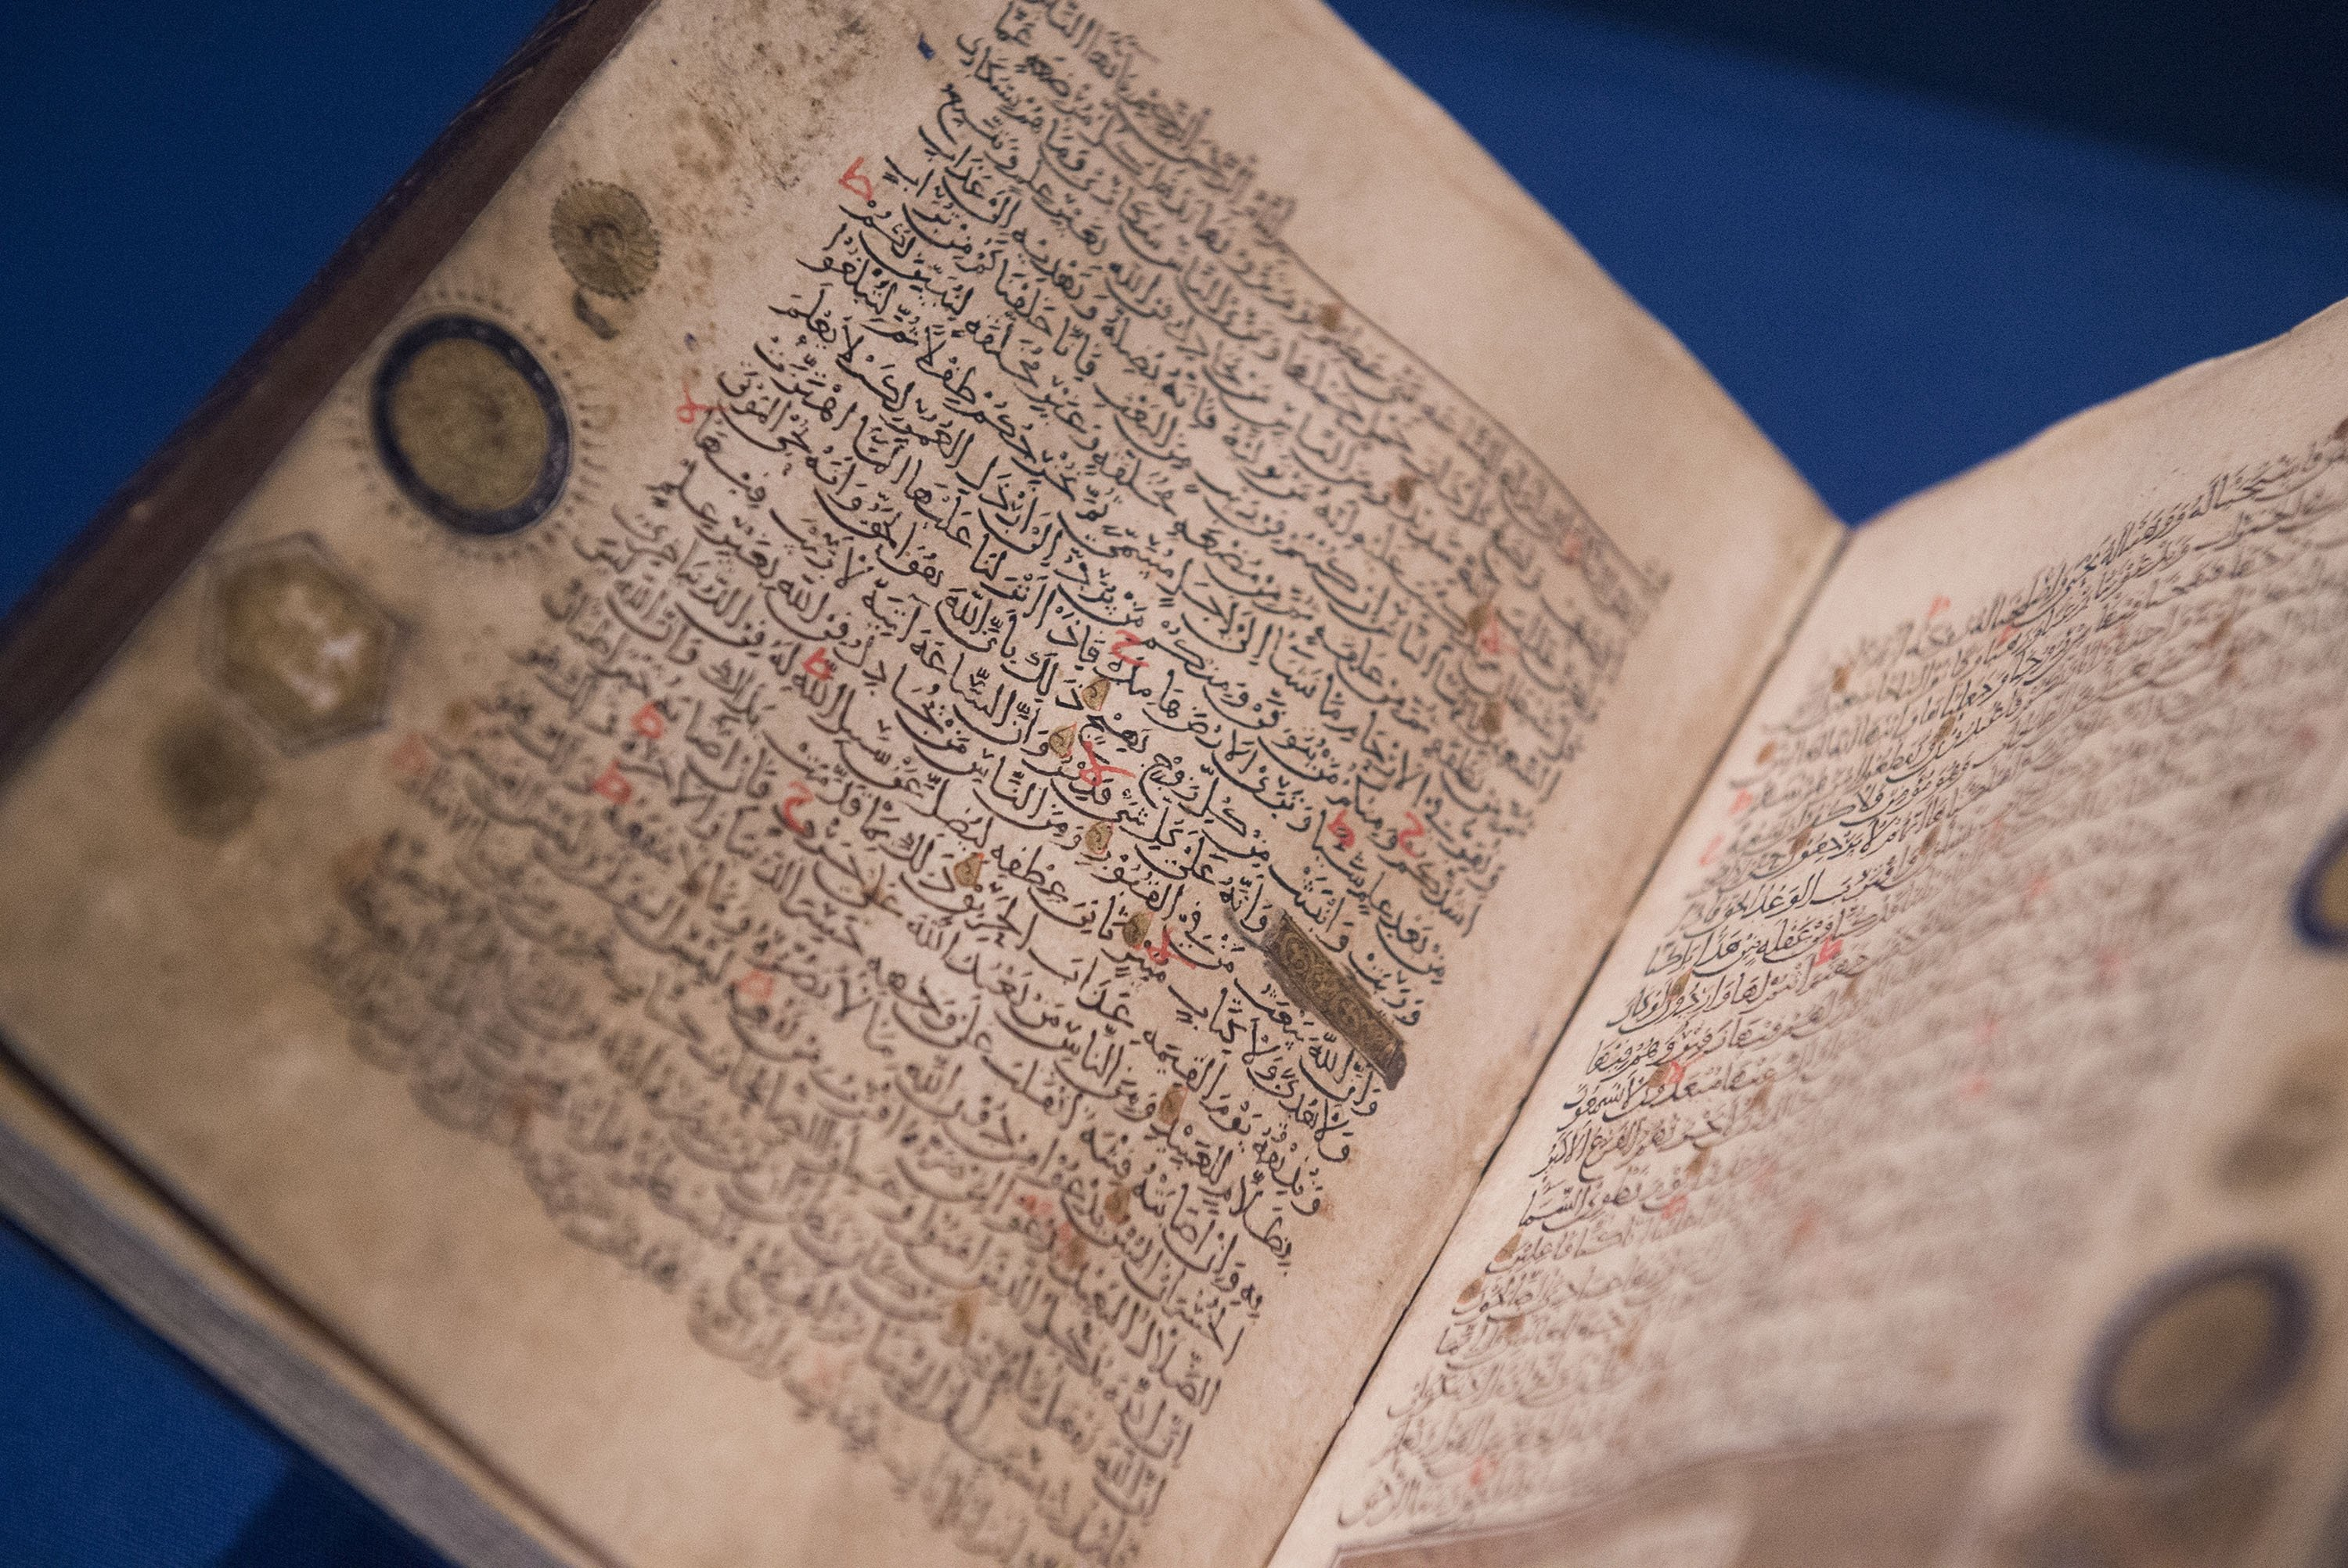 A Quran is displayed as part of the exhibit 'The Art of the Quran: Treasures from the Museum of Turkish and Islamic Arts,' at the Sackler Gallery in Washington, U.S., Oct. 20, 2016. (AP Photo)